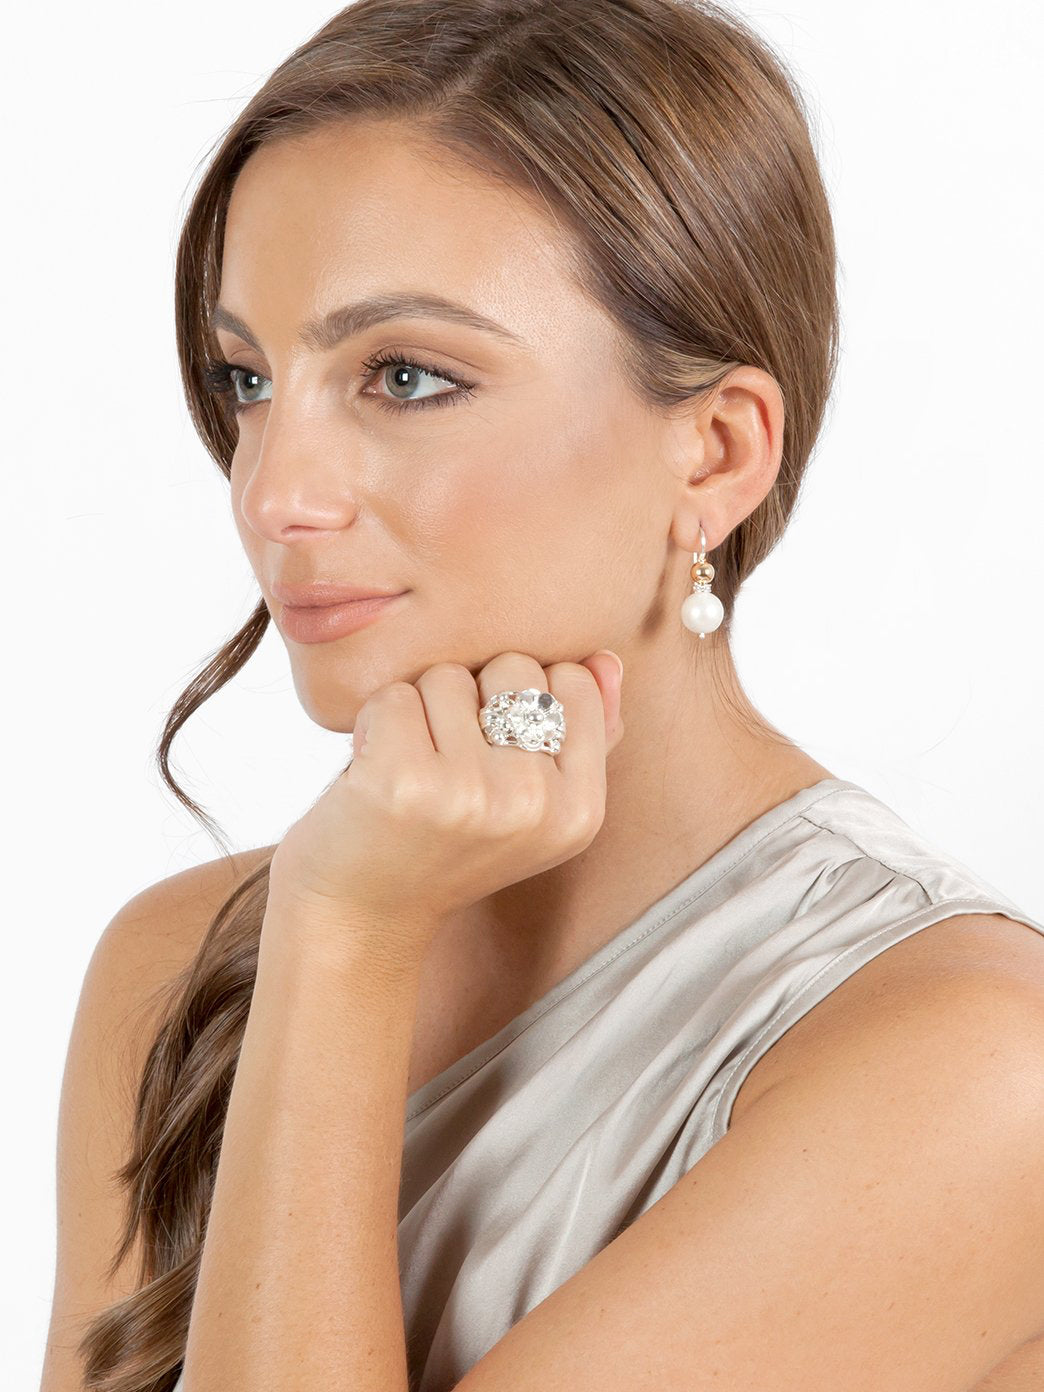 Fiorina Jewellery Garden Ring Model